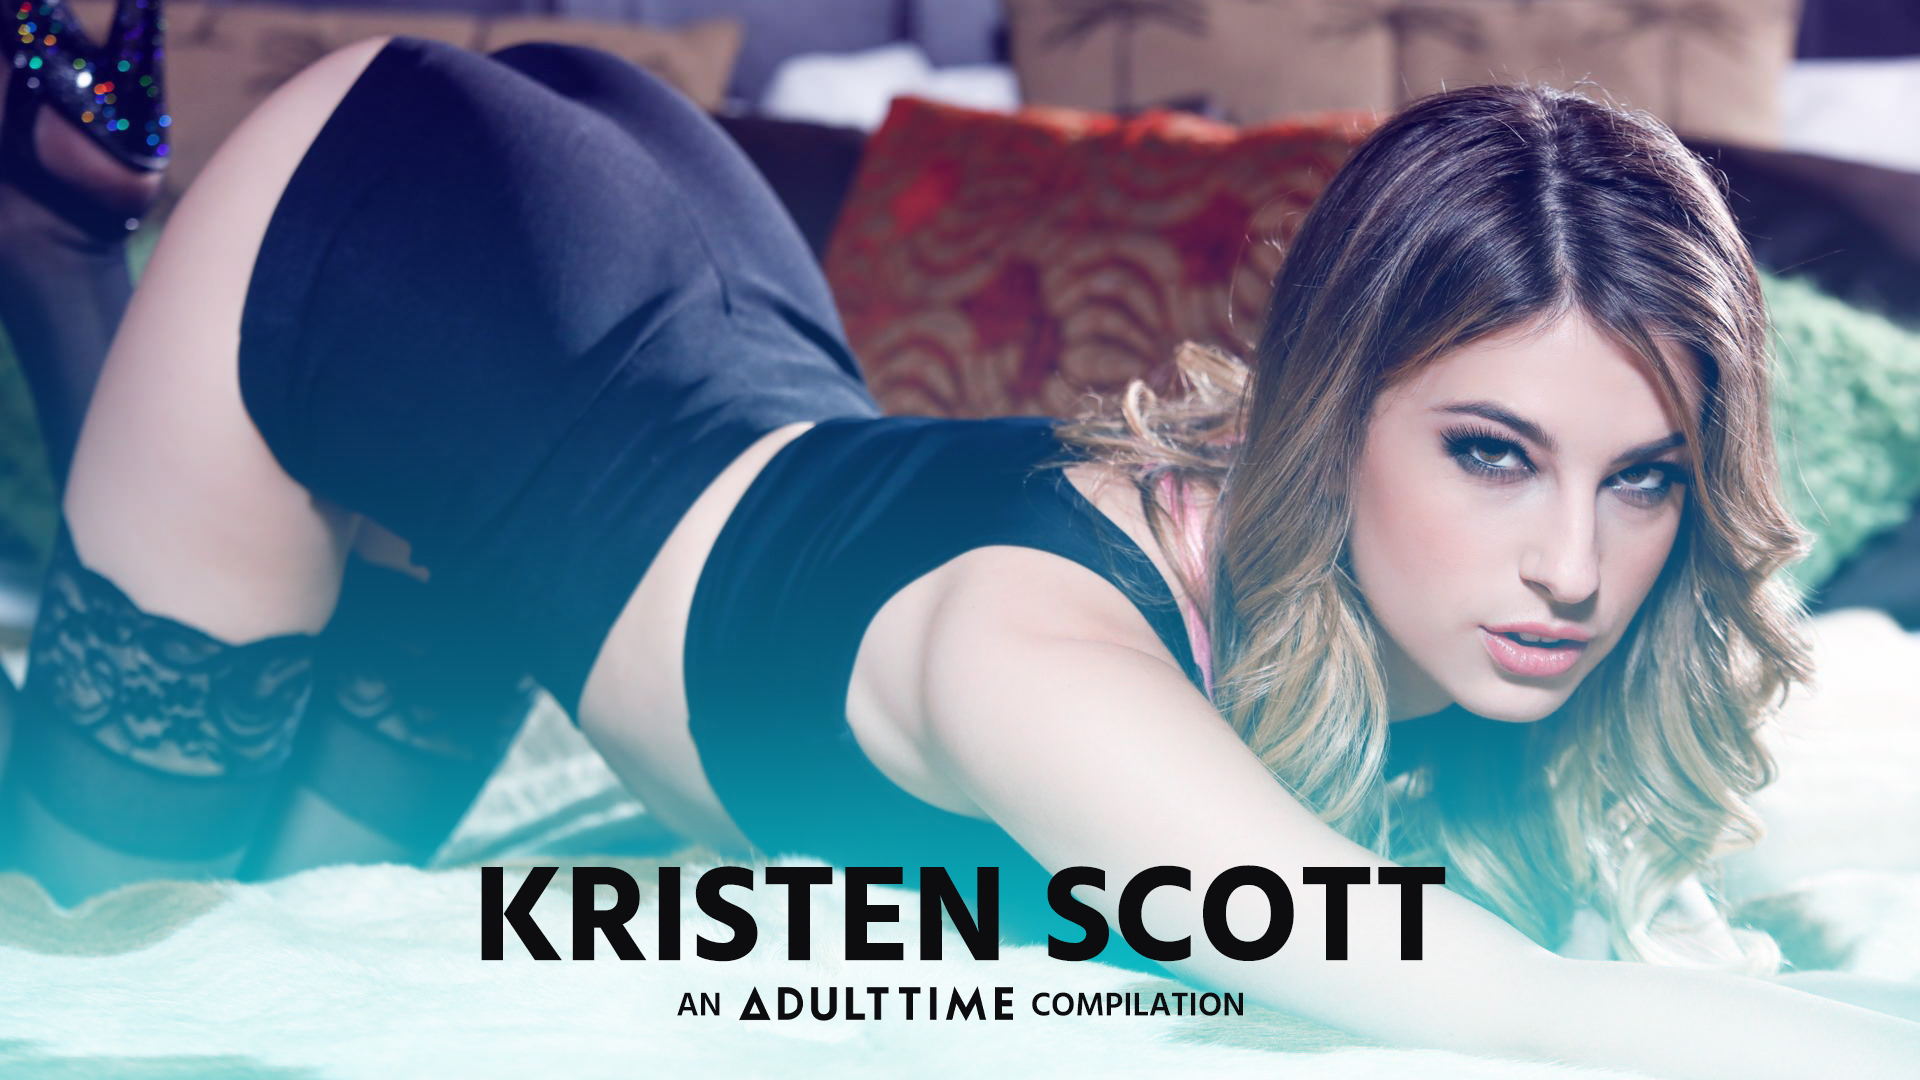 Kristen Scott - An Adult Time Compilation - Kristen Scott 1